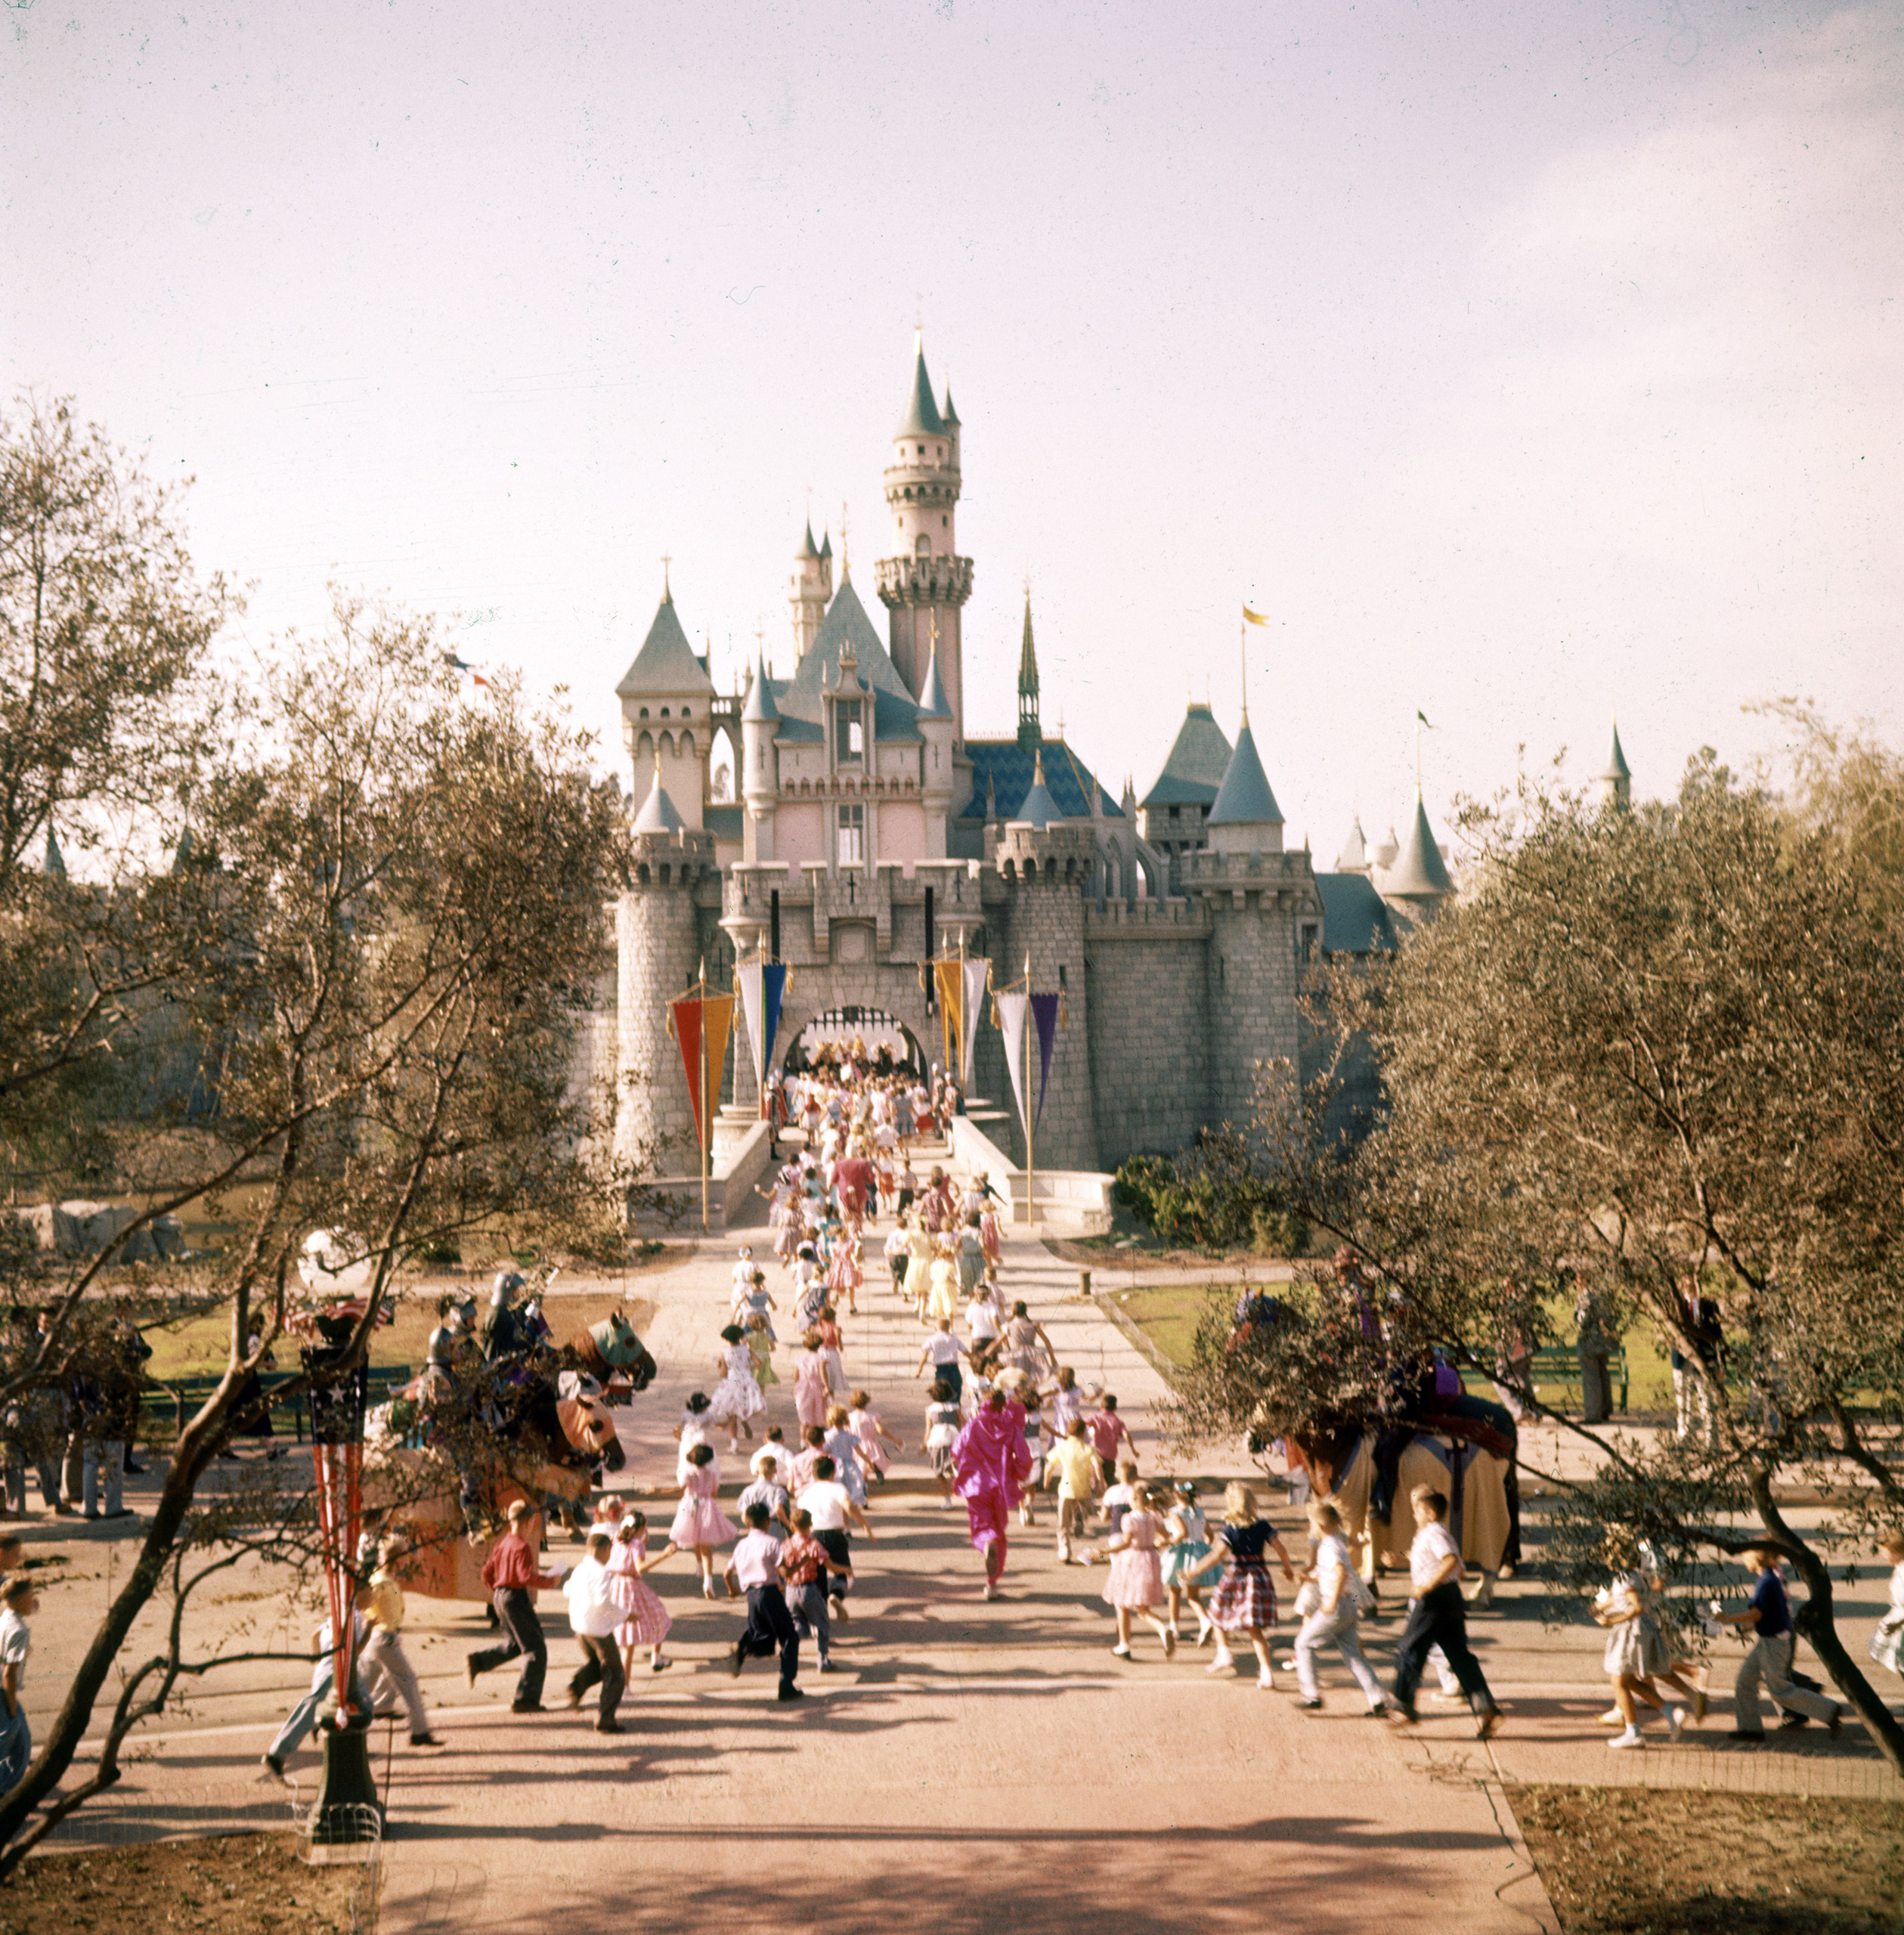 Caption from LIFE. Sleeping Beauty's castle in Fantasyland is overrun by children crossing drawbridge over moat. Inside, Disney plans a model torture chamber.